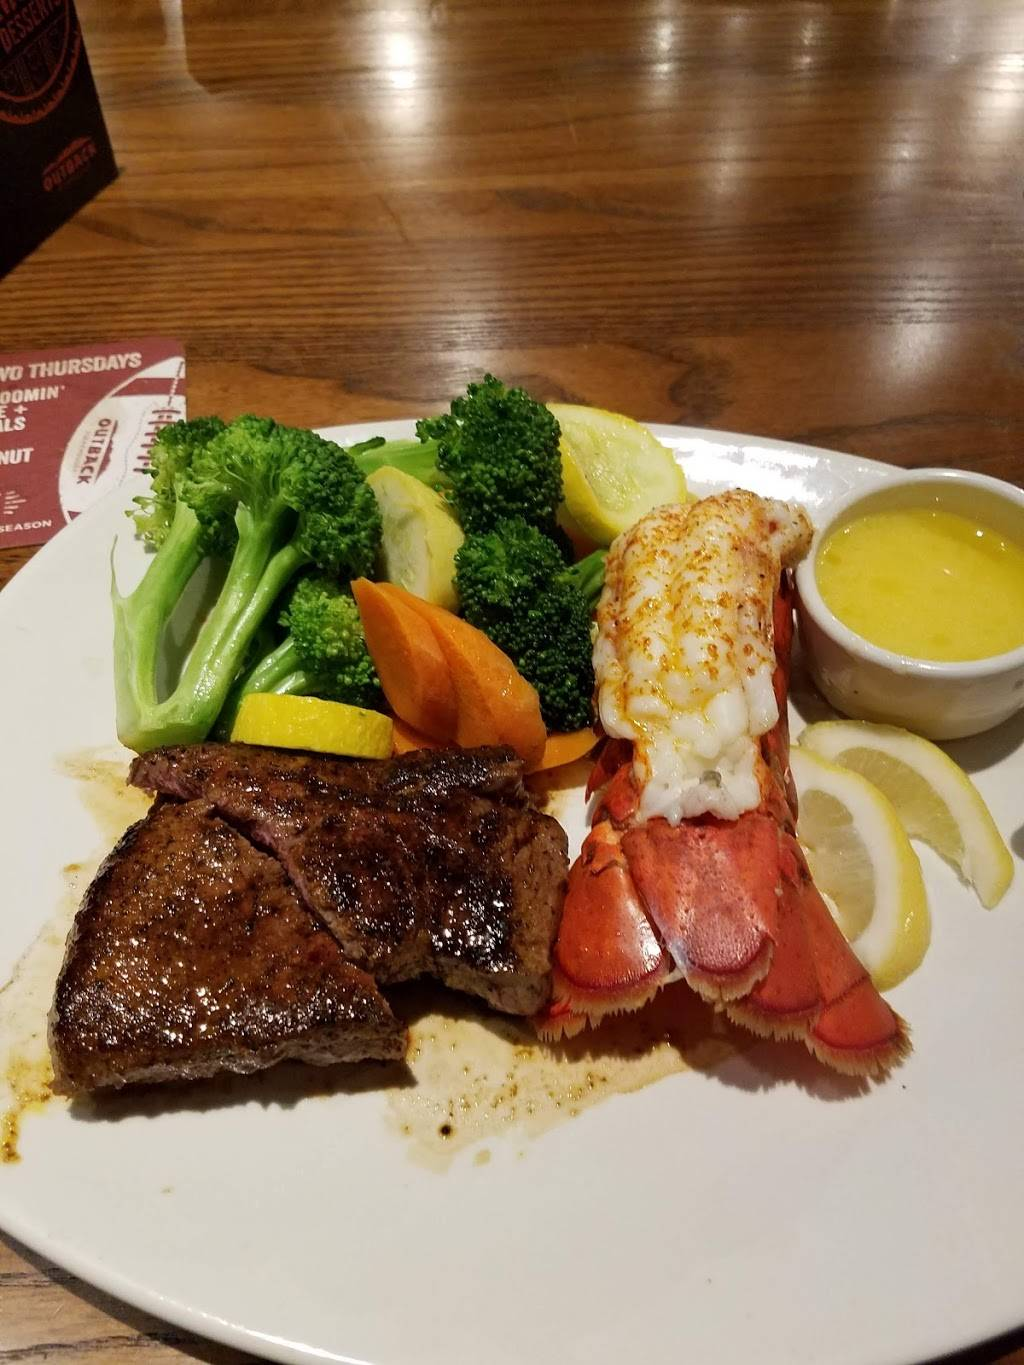 Outback Steakhouse | restaurant | 617 N Canal Rd, Lansing, MI 48917, USA | 5176225346 OR +1 517-622-5346